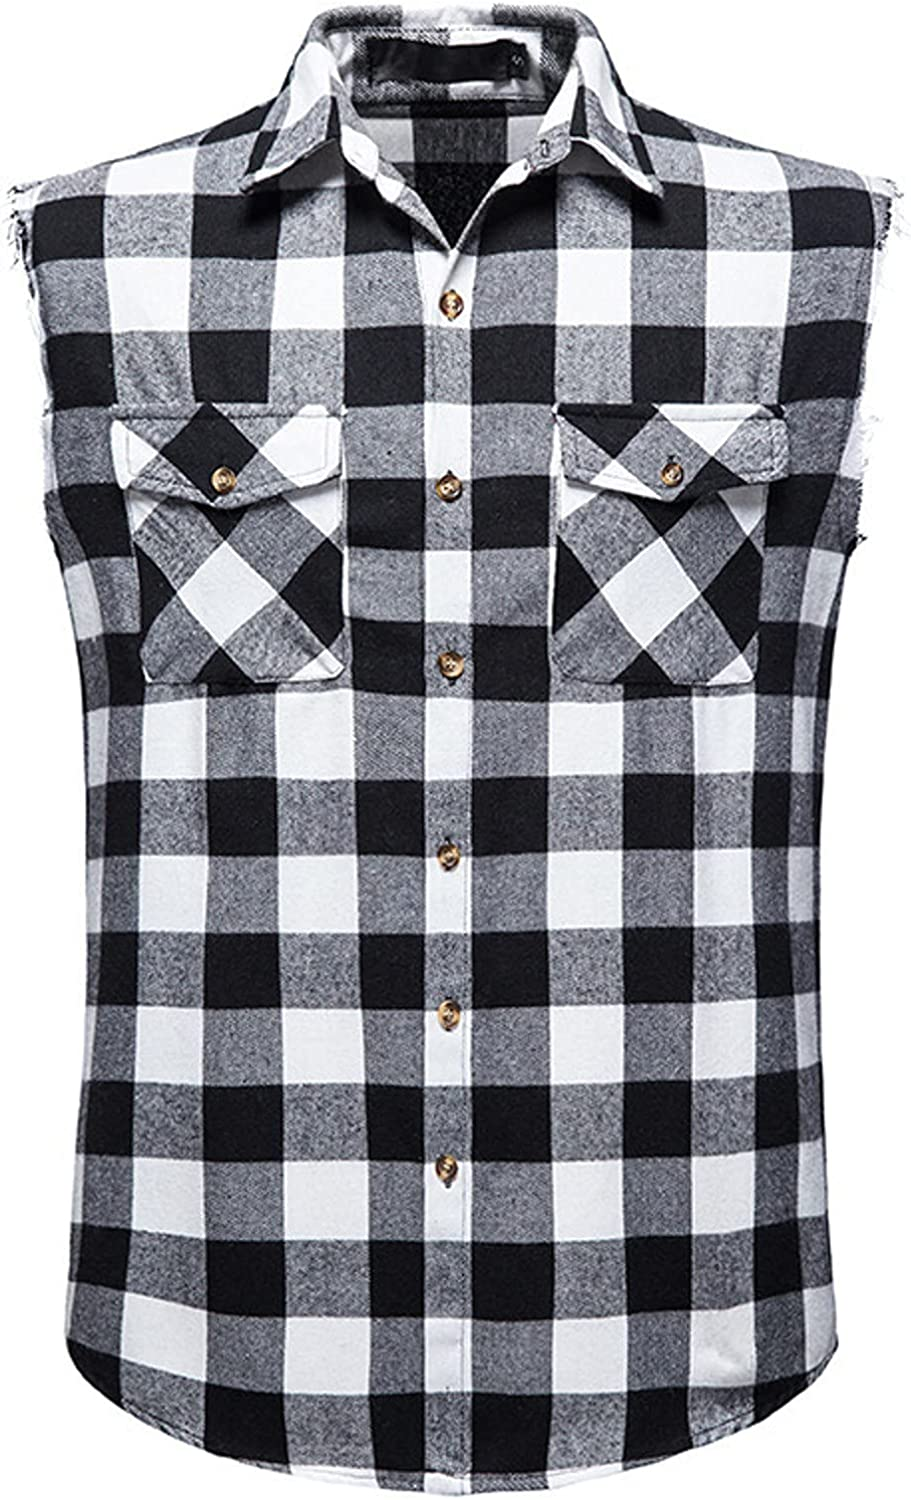 Clearance Mens Muscle Tank Top Cut Off Sleeveless Button Down Shirts Vintage Cowboy Plaid Flannel Vest with Pocket